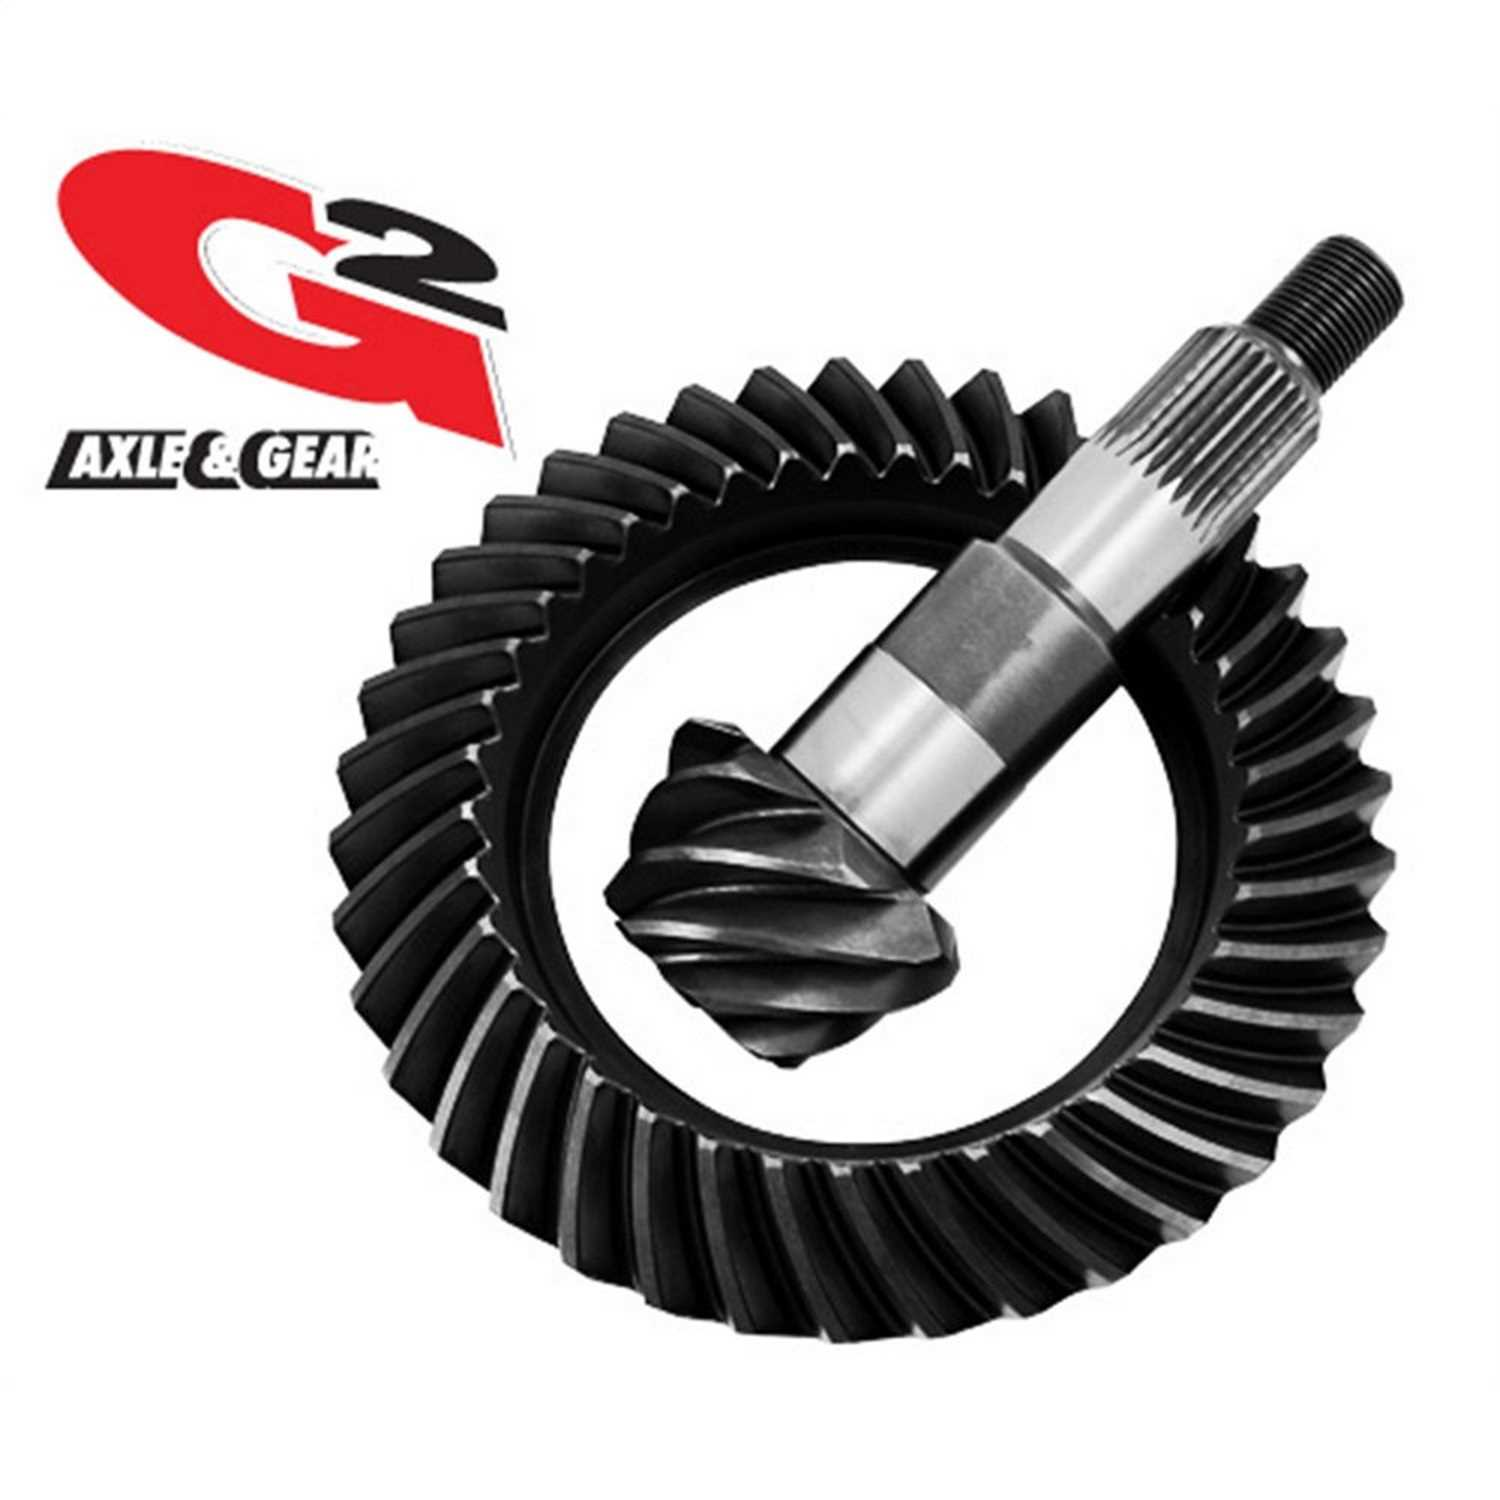 2-2021-538 G2 Axle and Gear Ring and Pinion Set